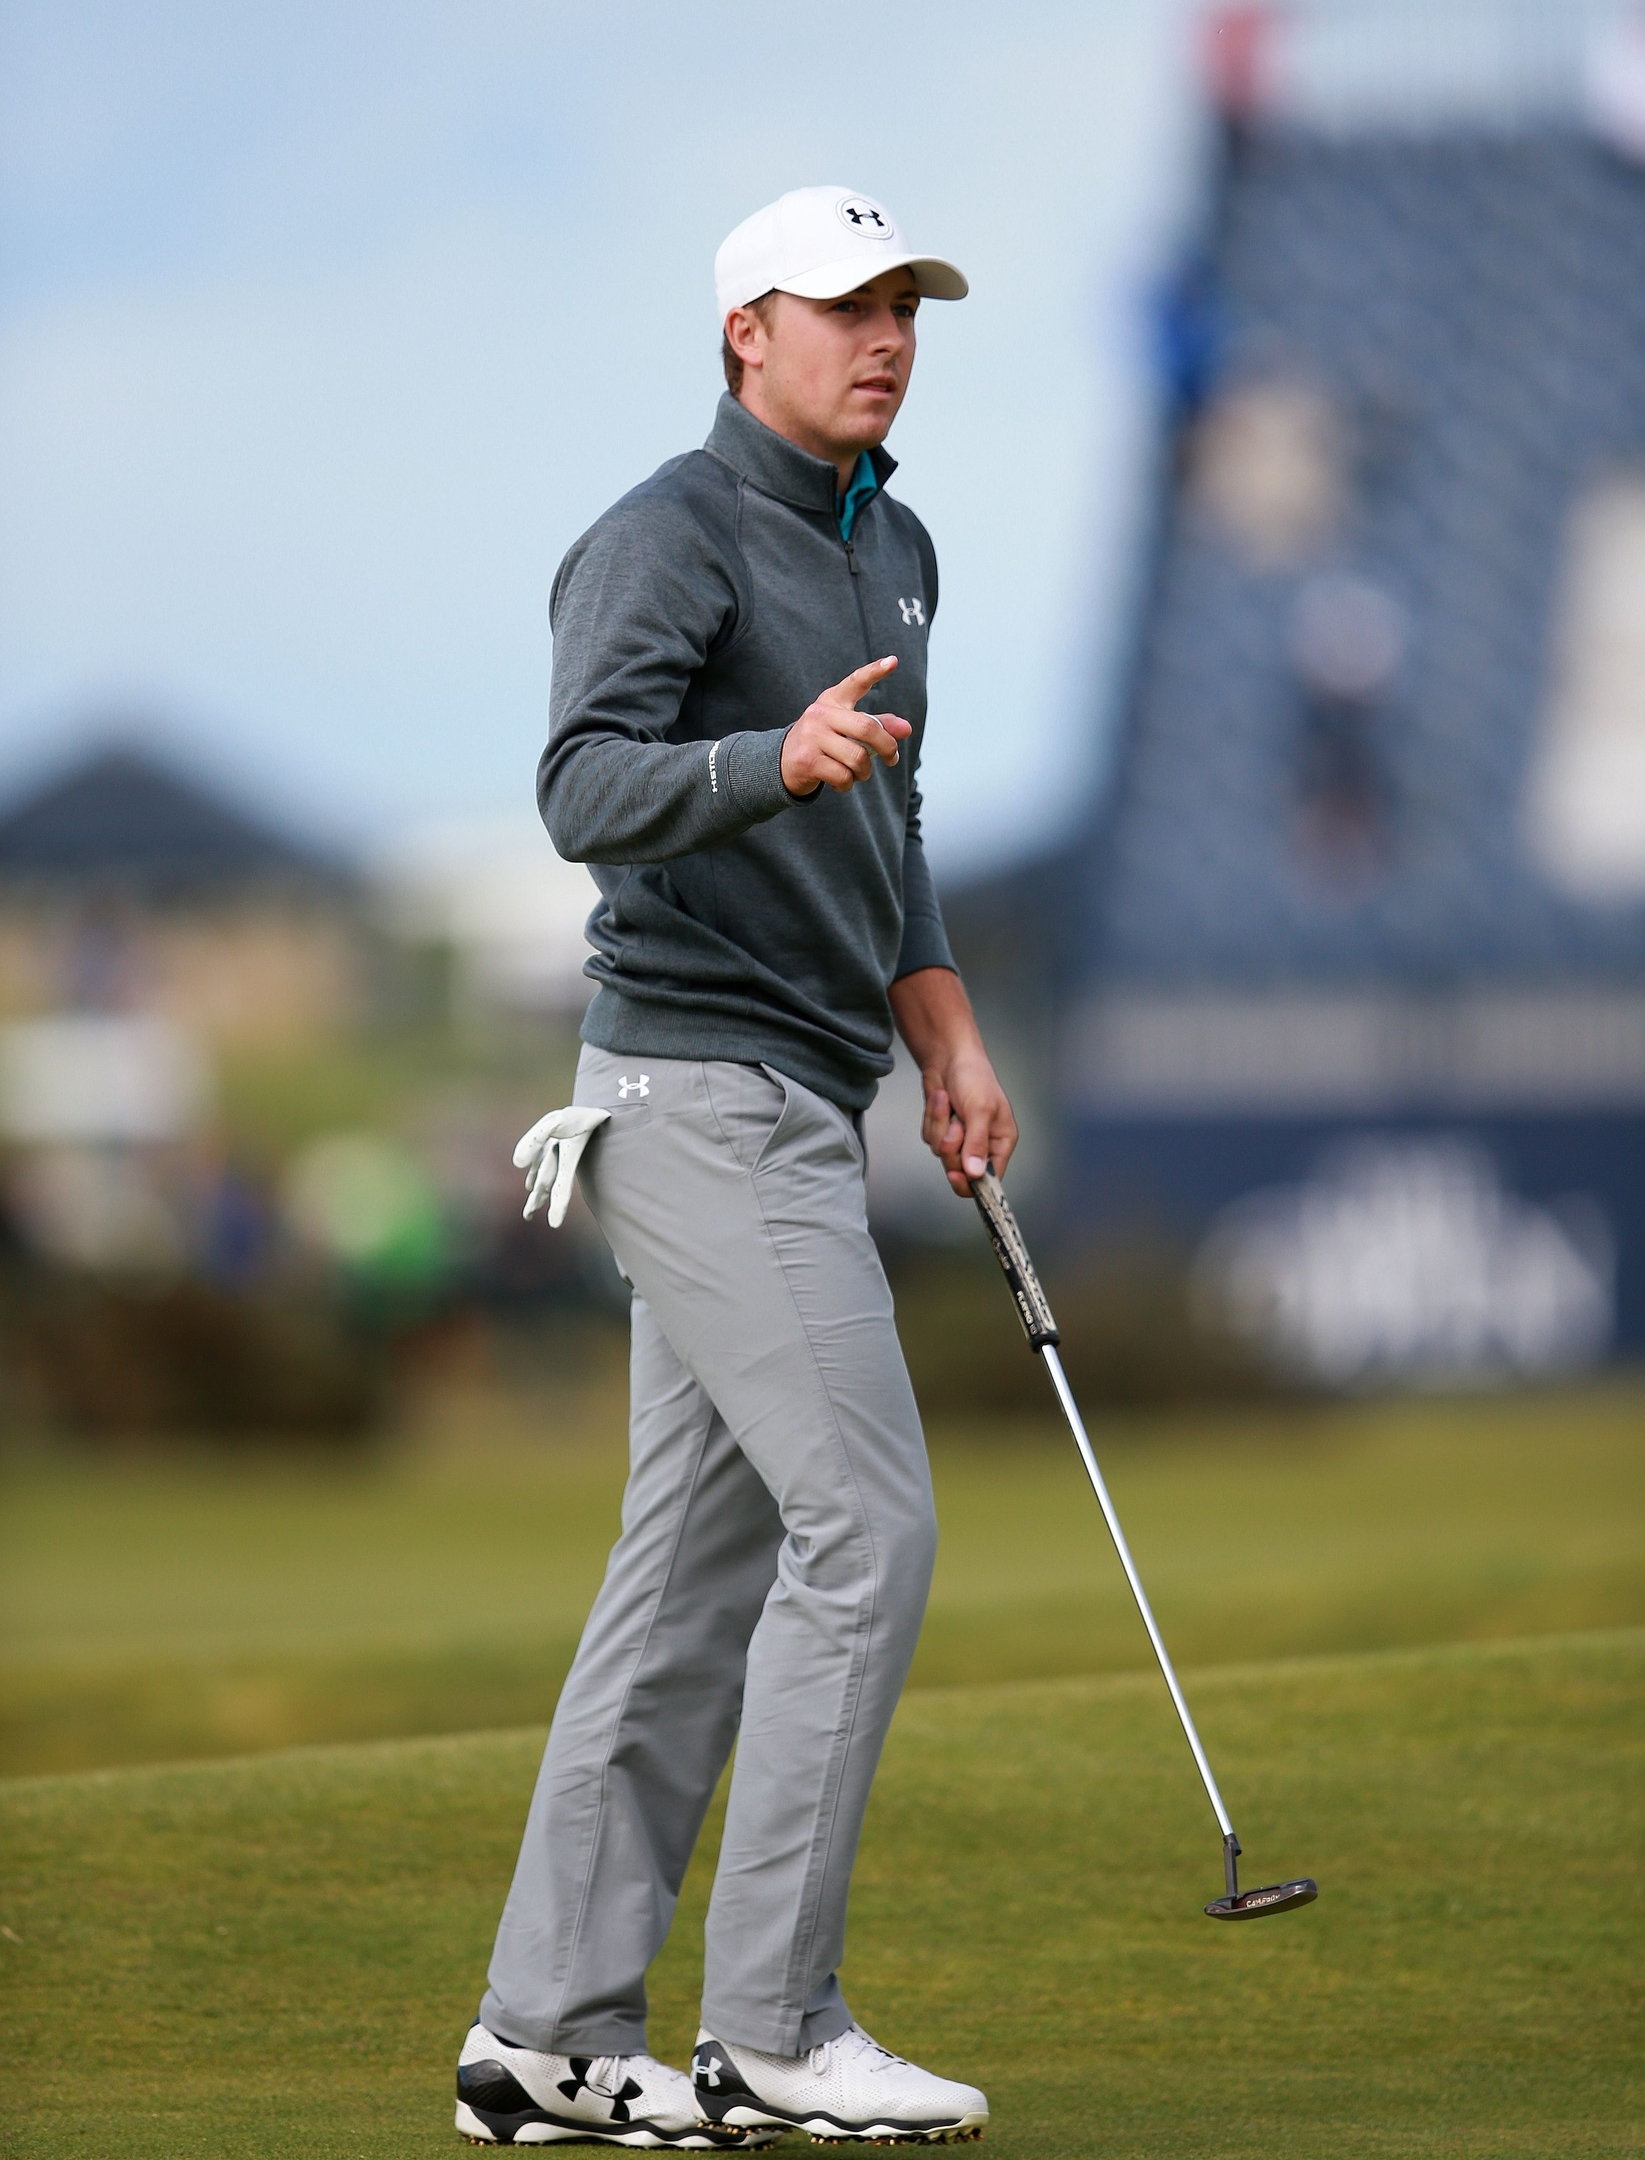 USA's Jordan Spieth celebrates a putt during day four of The Open Championship. Danny Lawson/PA Wire.